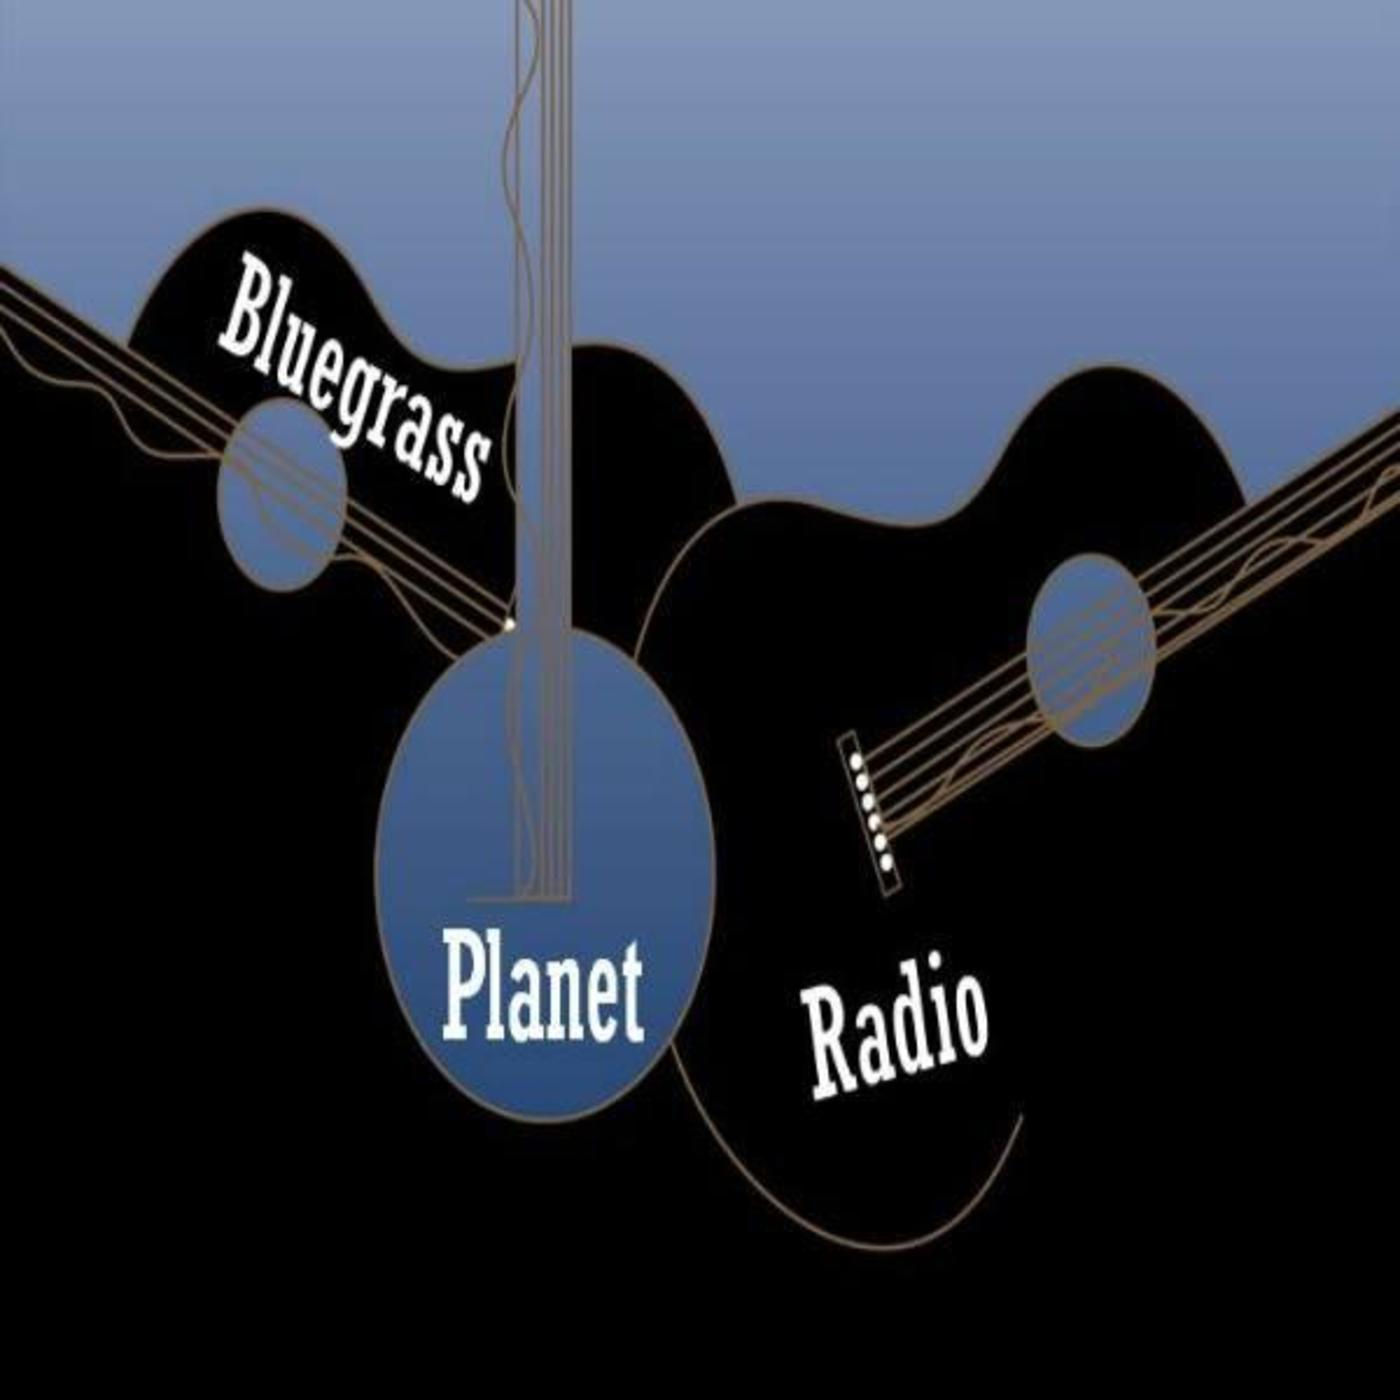 Bluegrass Planet Radio